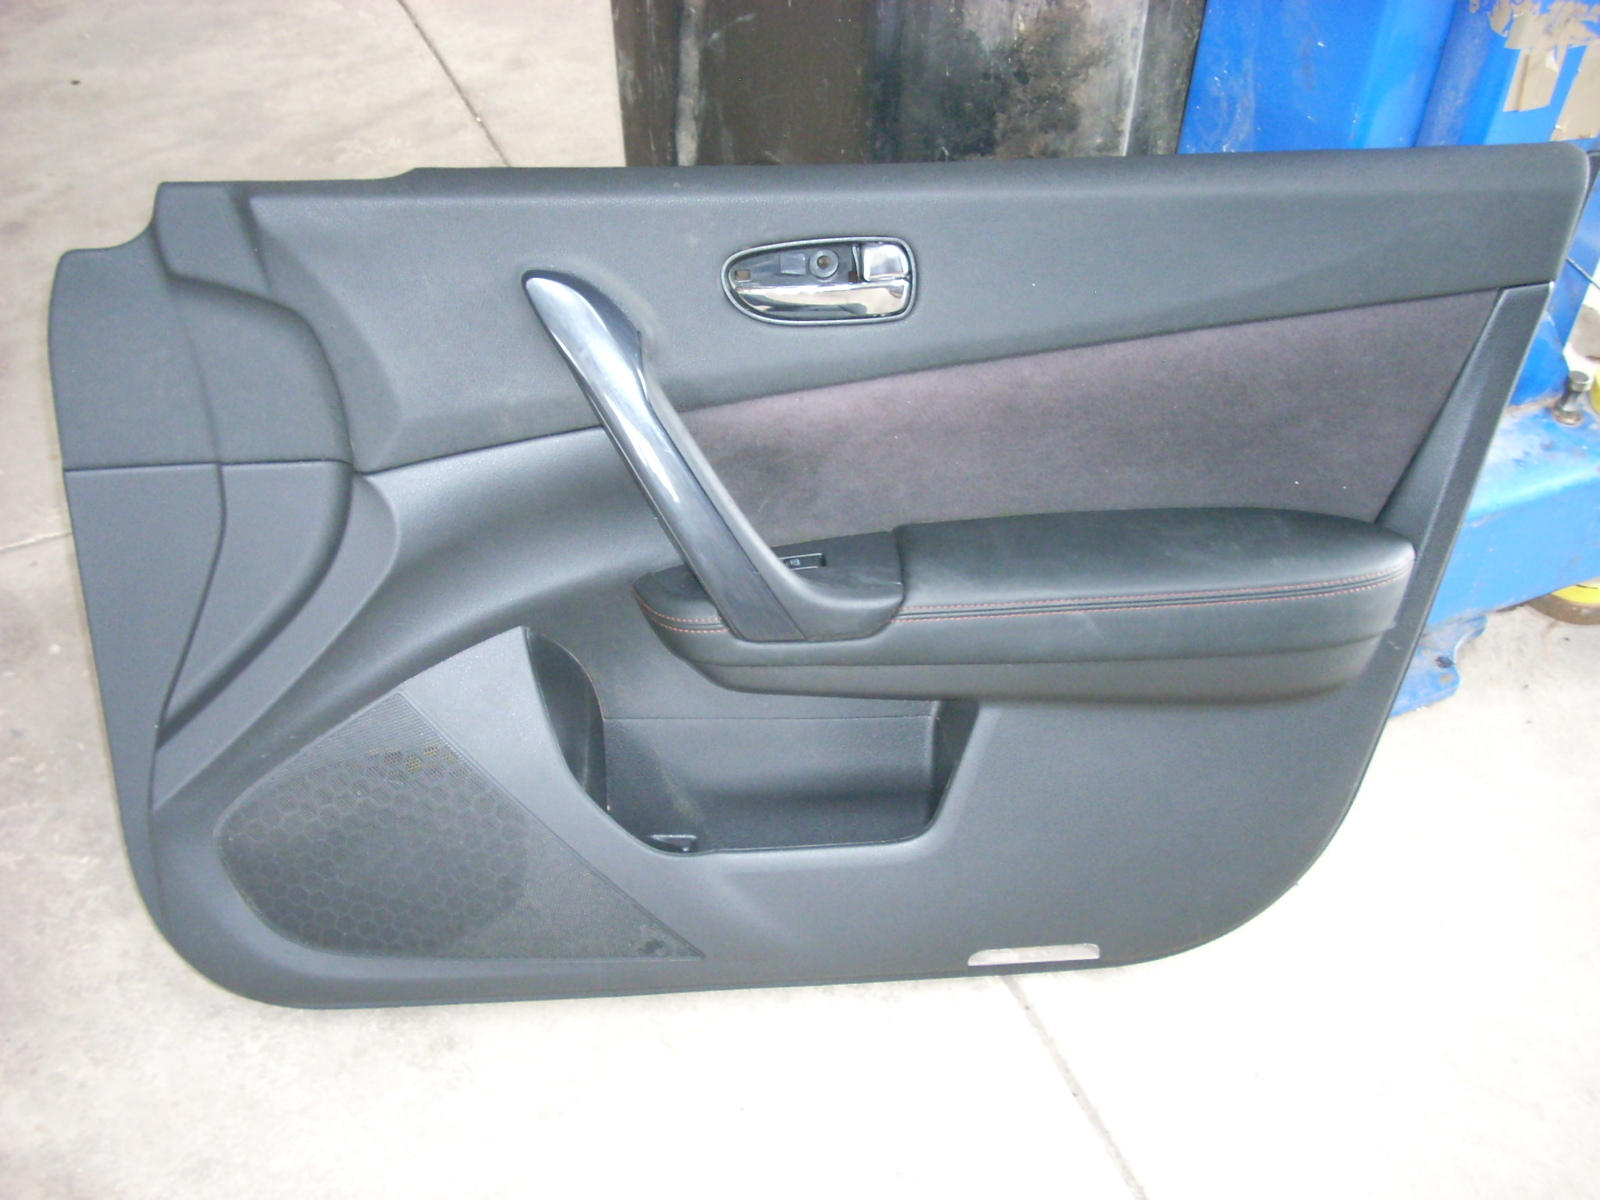 2014 NISSAN MAXIMA BLACK FRONT RIGHT DOOR PANEL [TRIM G]